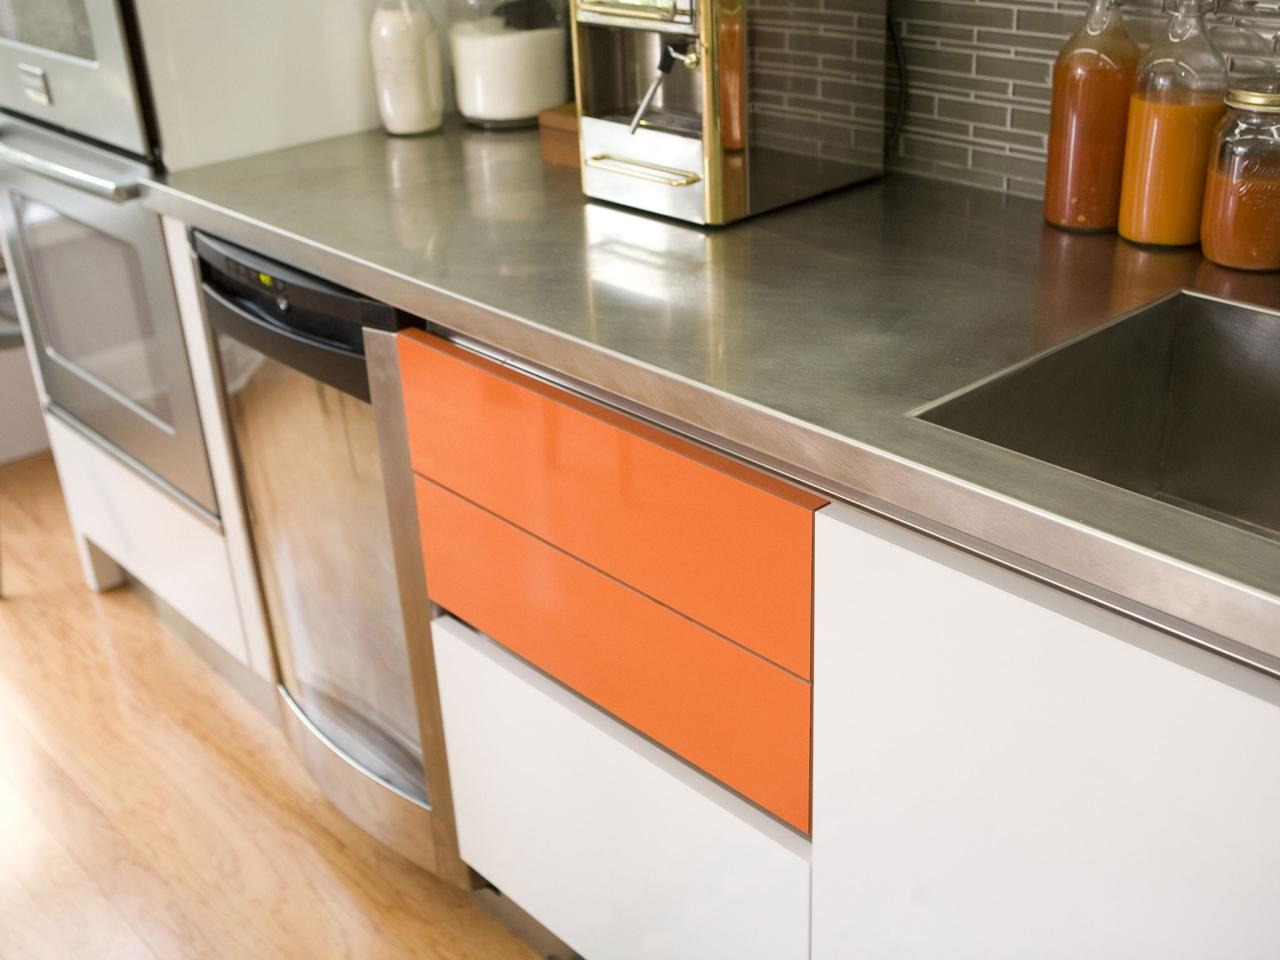 Orange Kitchens And Cabinets